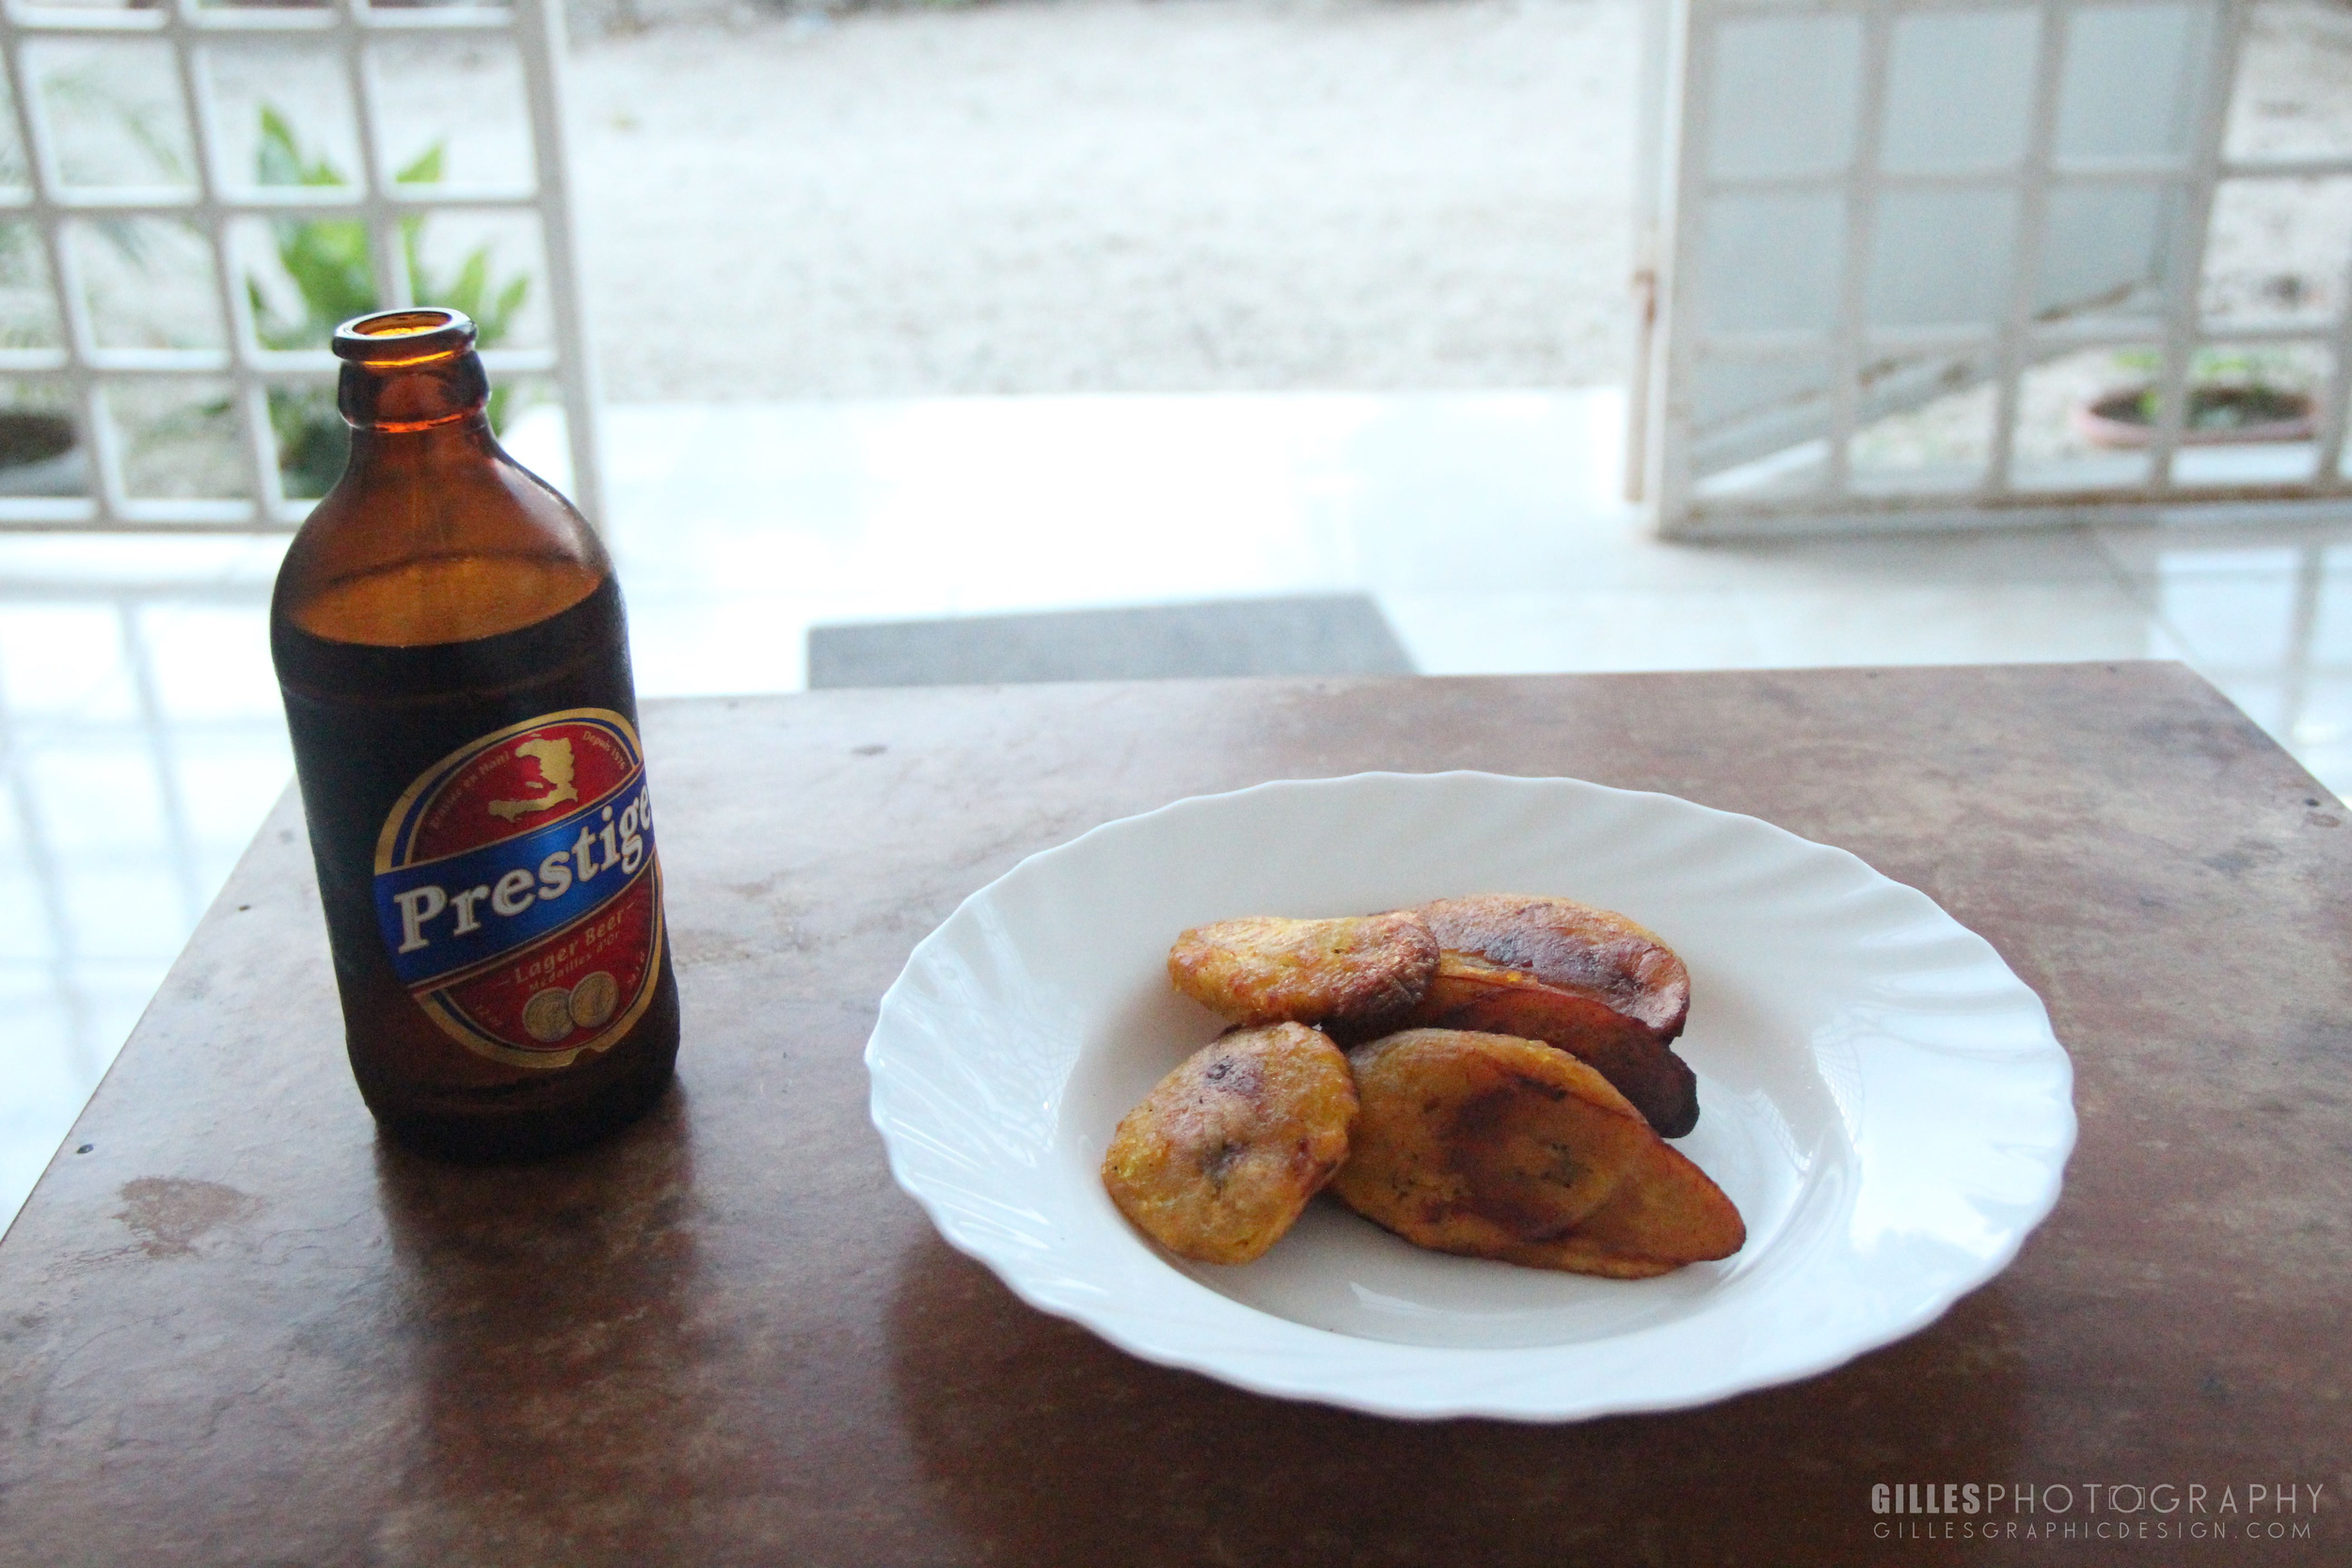 The common Haitian Meal: Prestige beer and Banan(plantains)